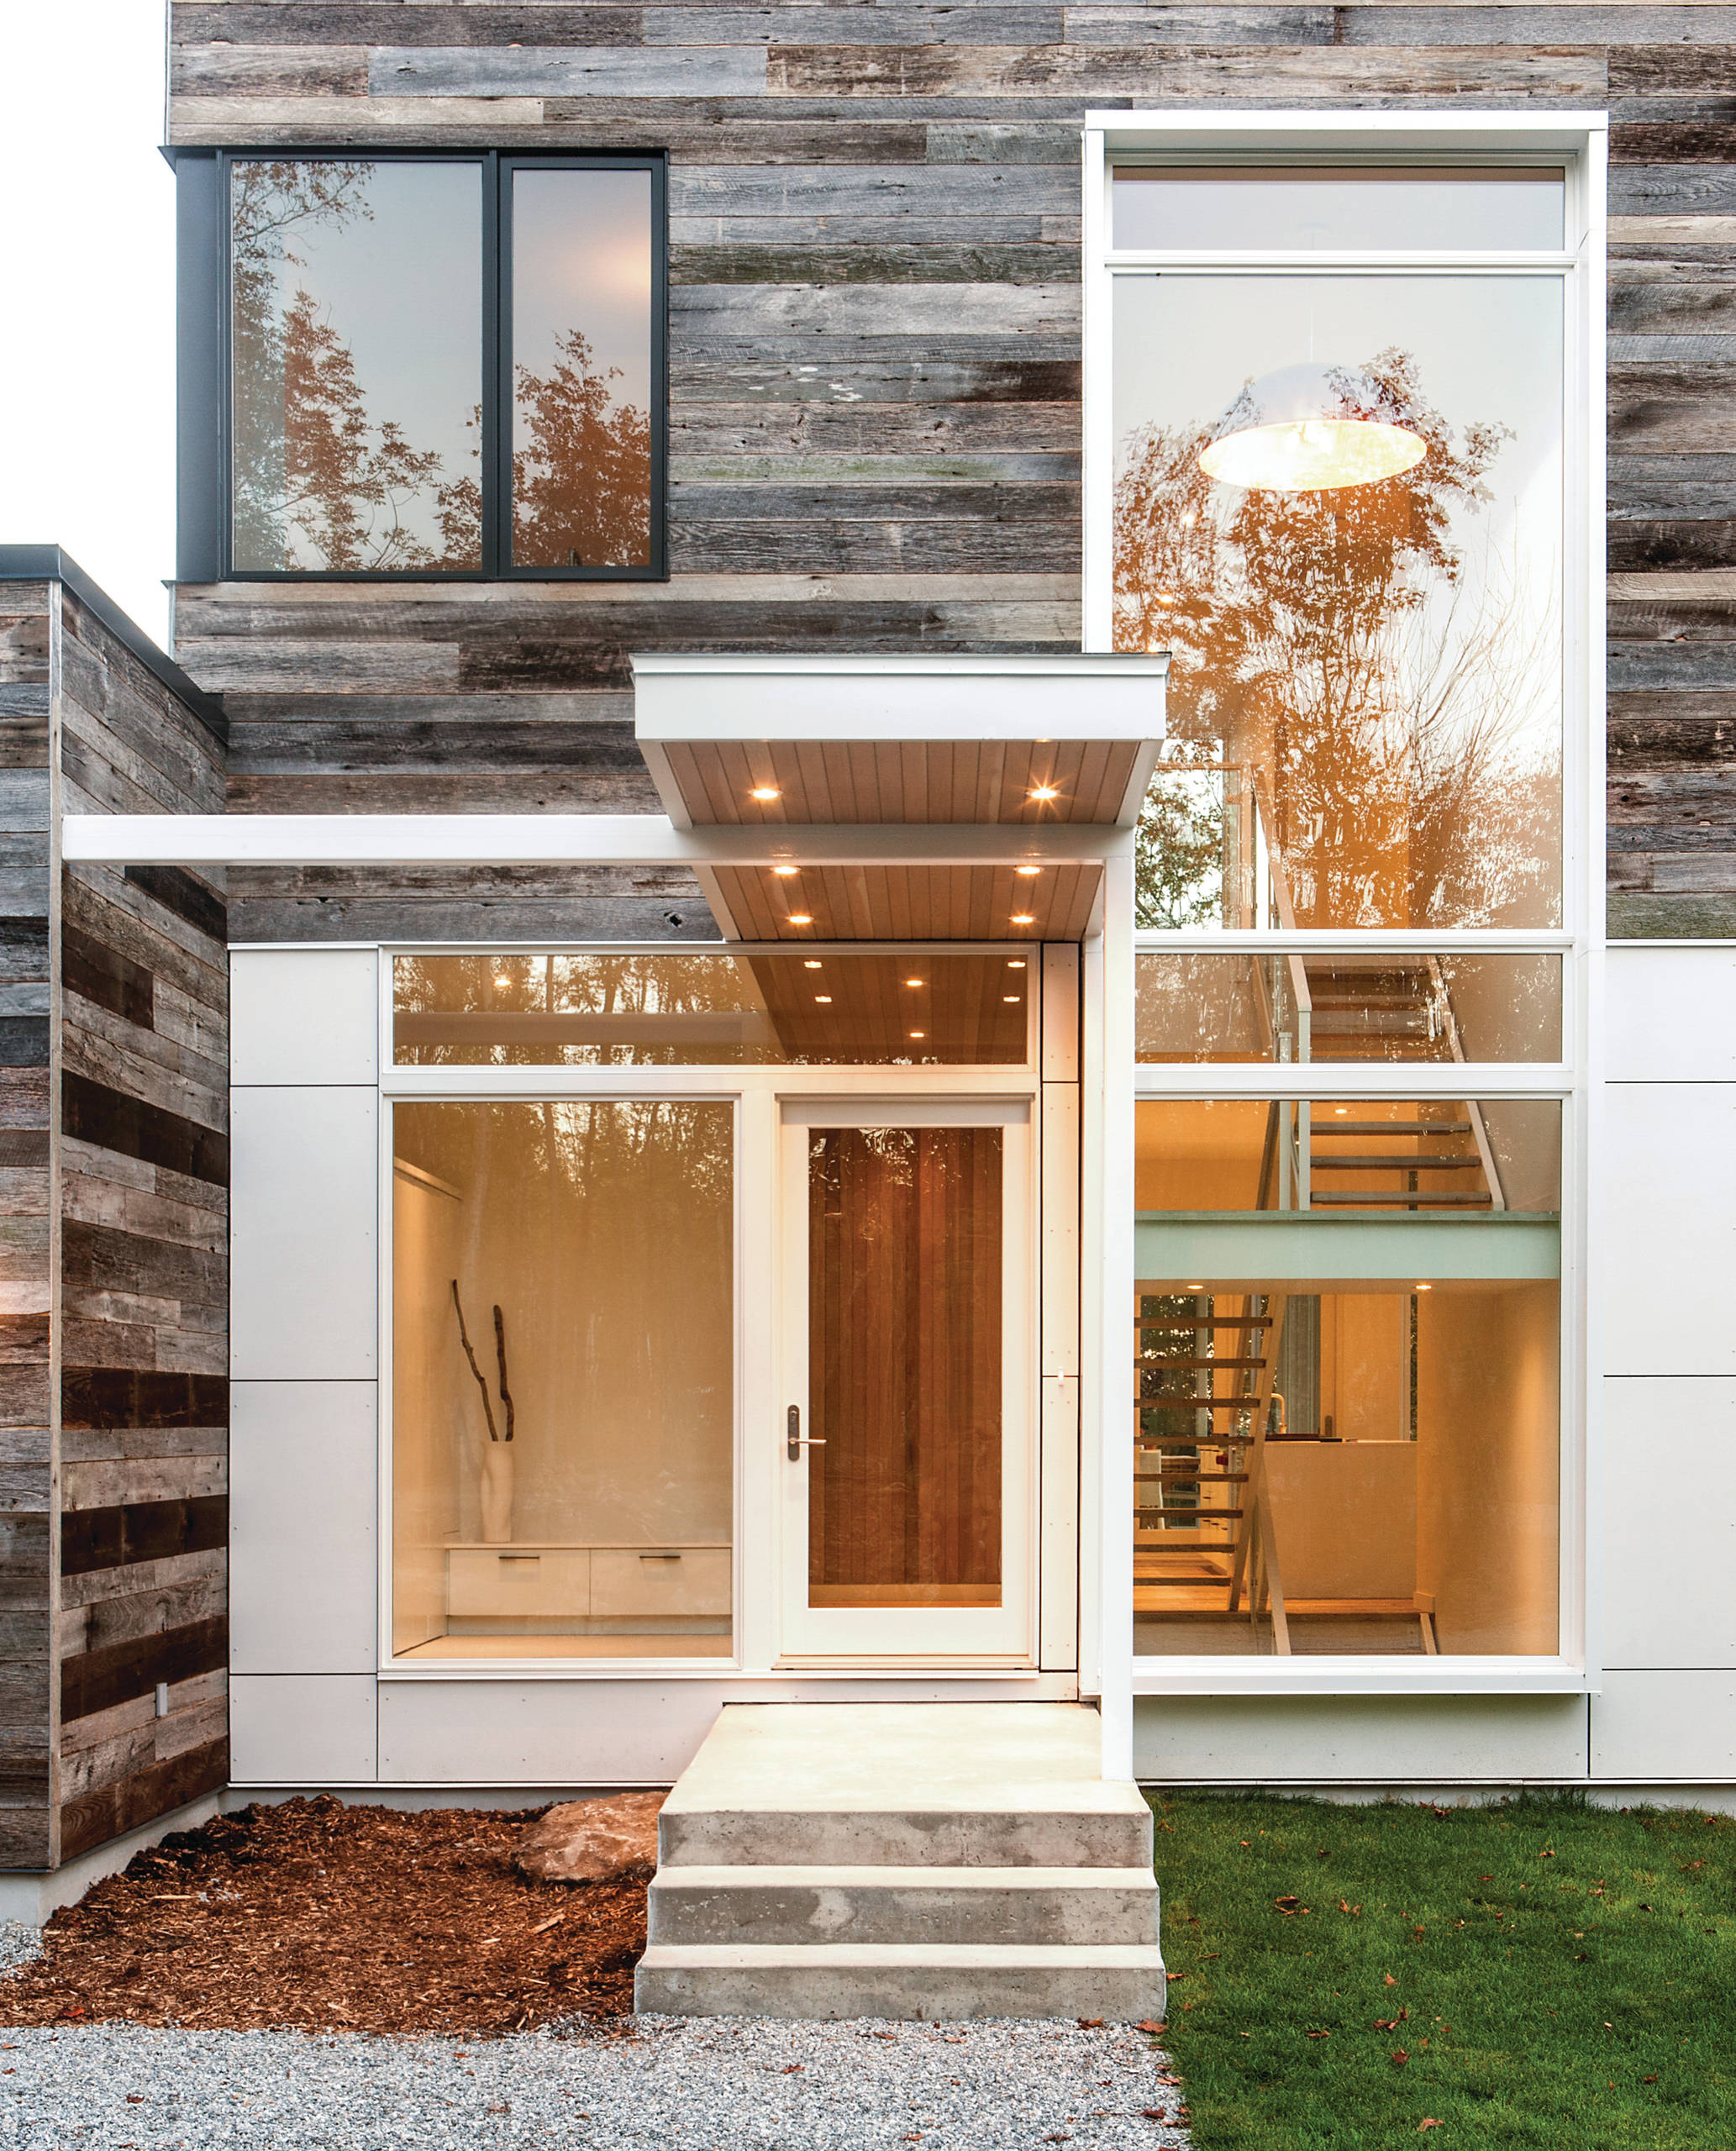 Home Design Ideas Modern: 16 Enchanting Modern Entrance Designs That Boost The